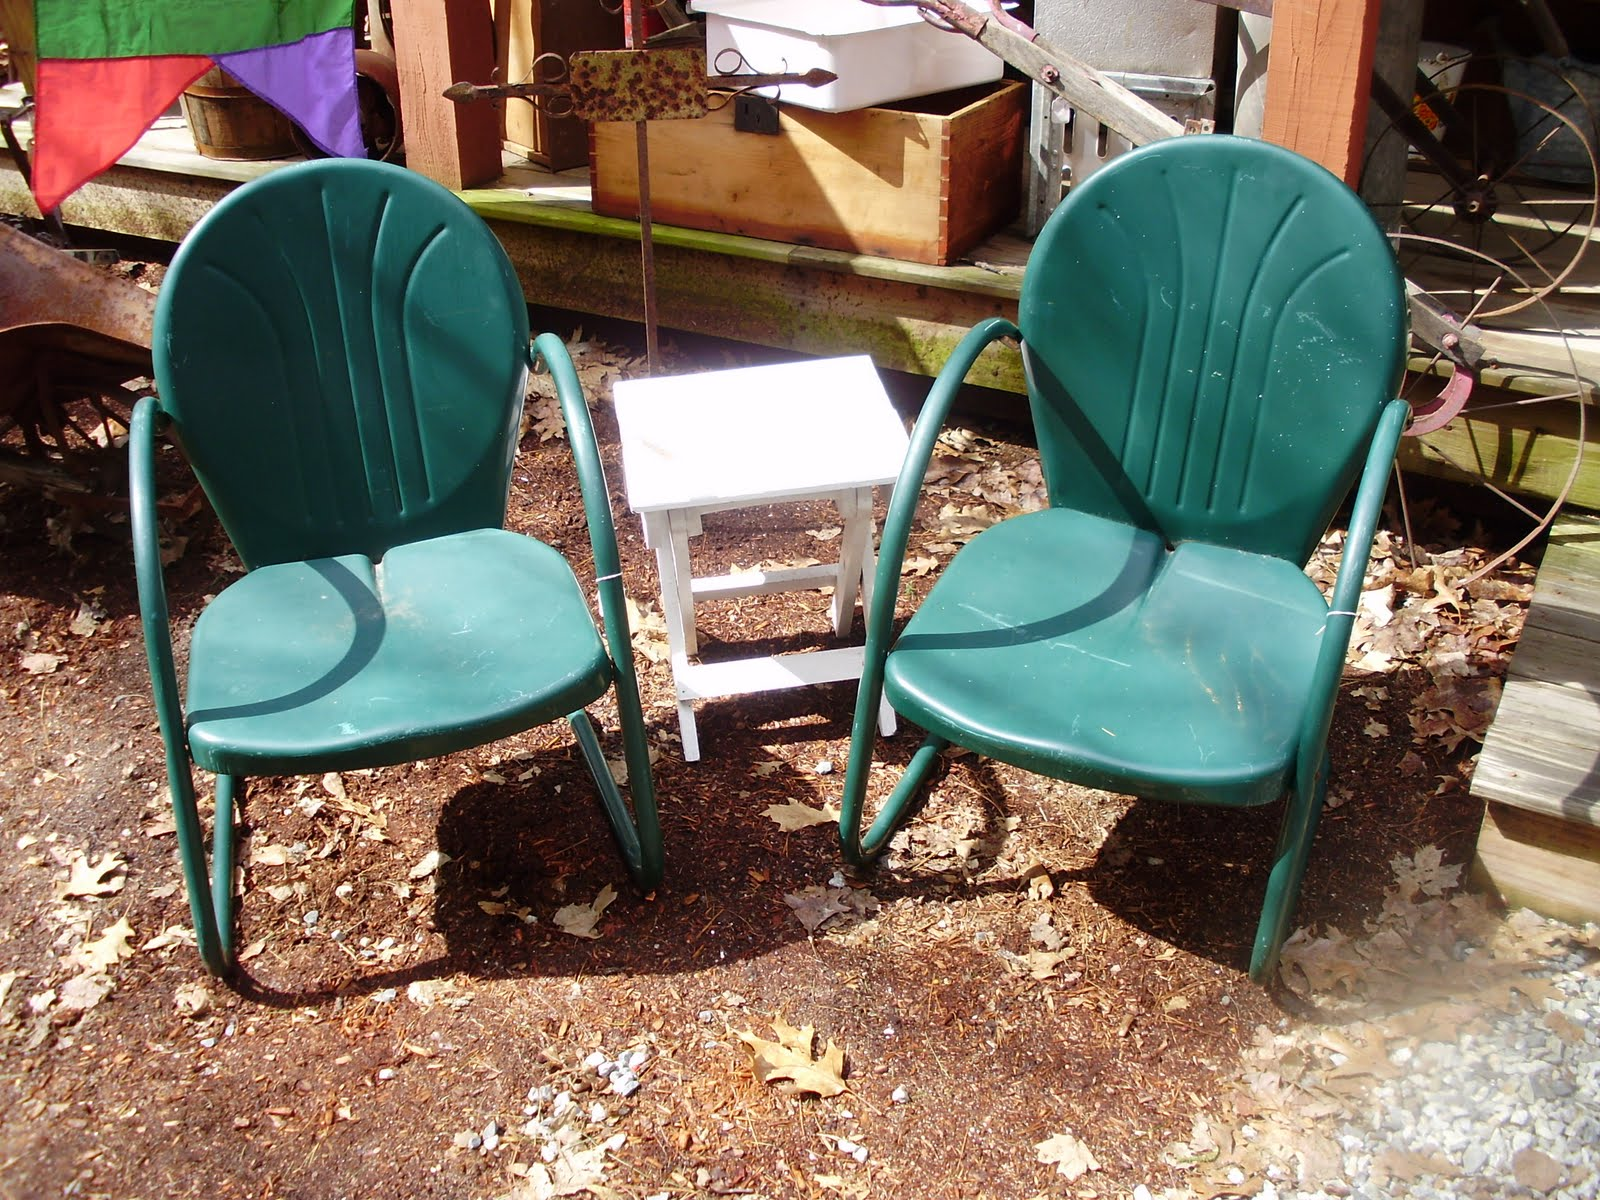 Retro Lawn Chairs Log Cabin Antiques And Gifts Vintage Metal Lawn Chairs